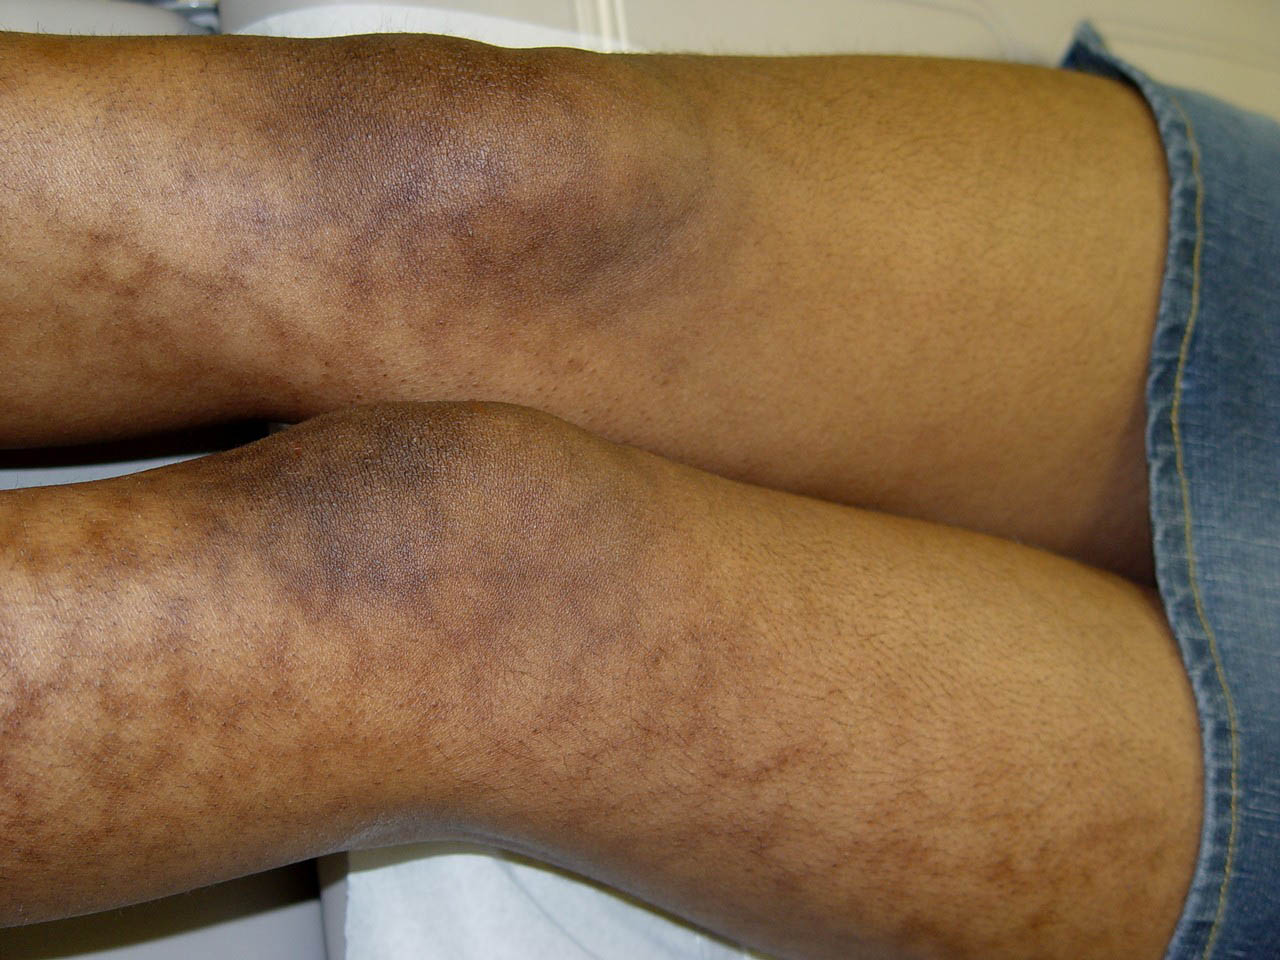 Erythema Ab Igne - Diseases & Conditions - Medscape Reference